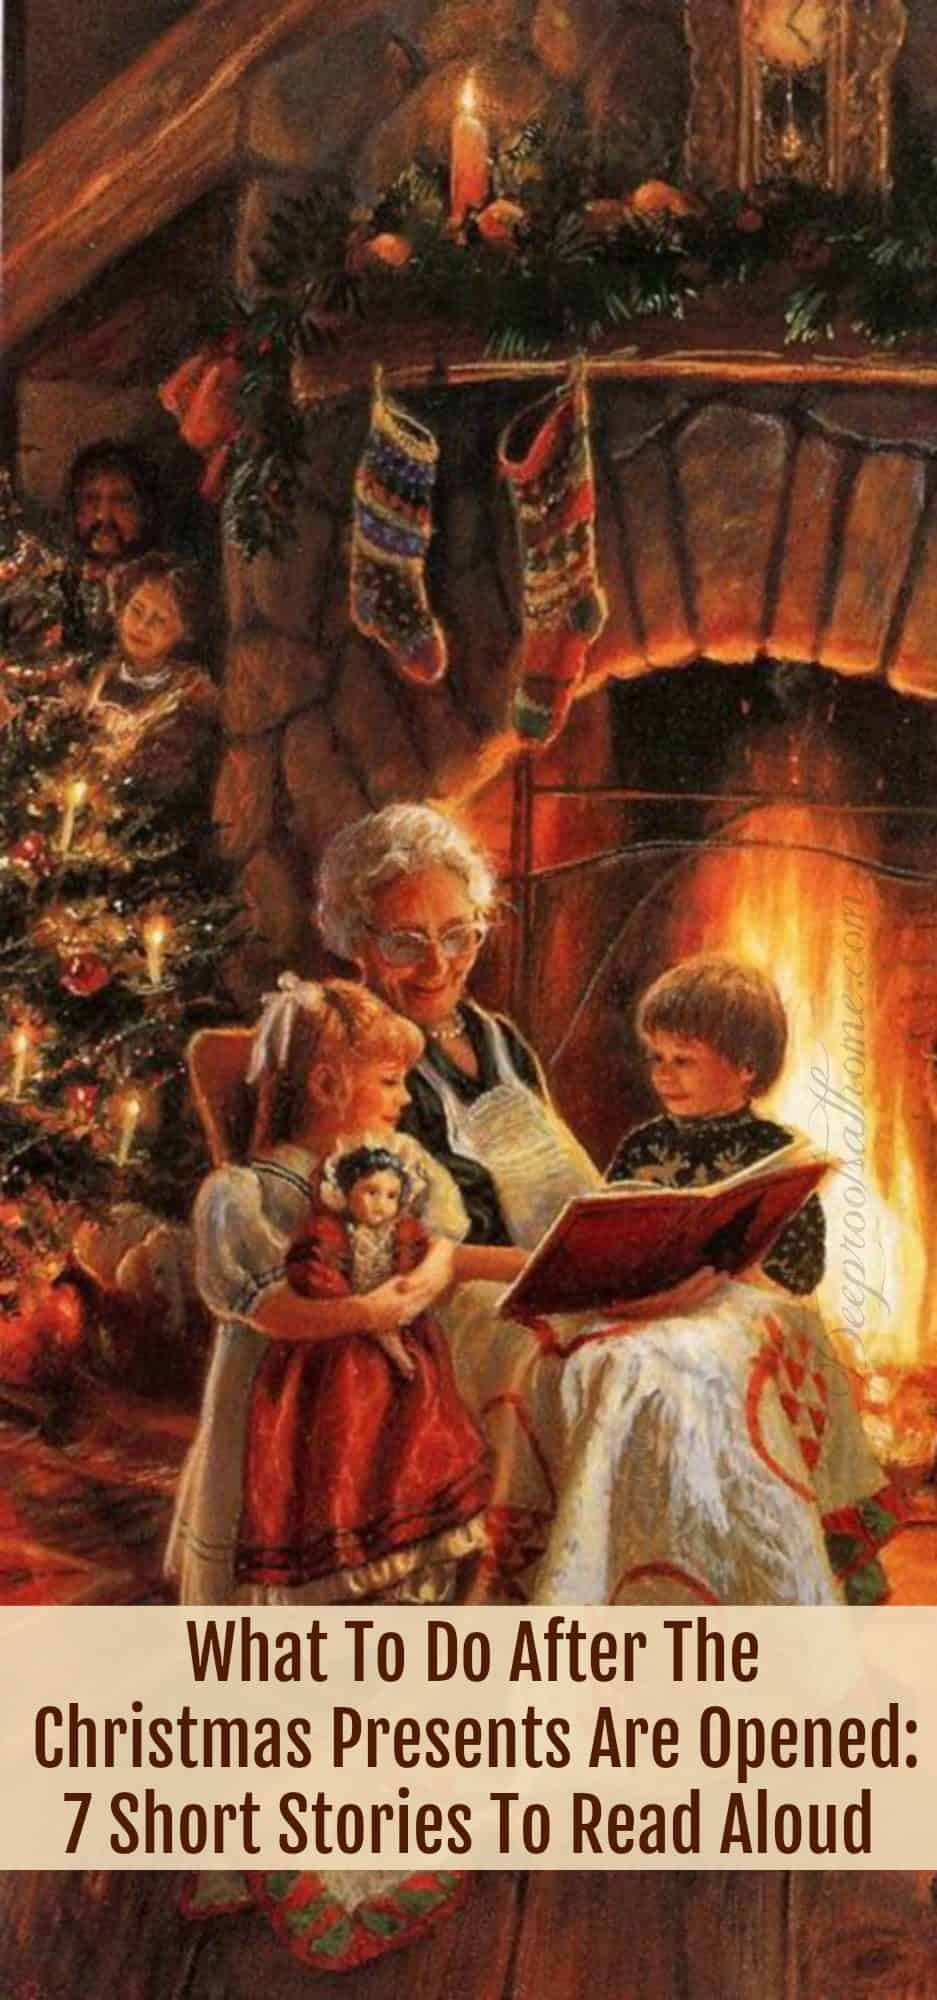 Short Inspirational Christmas Stories.What To Do After Christmas Presents Are Opened 7 Short Read